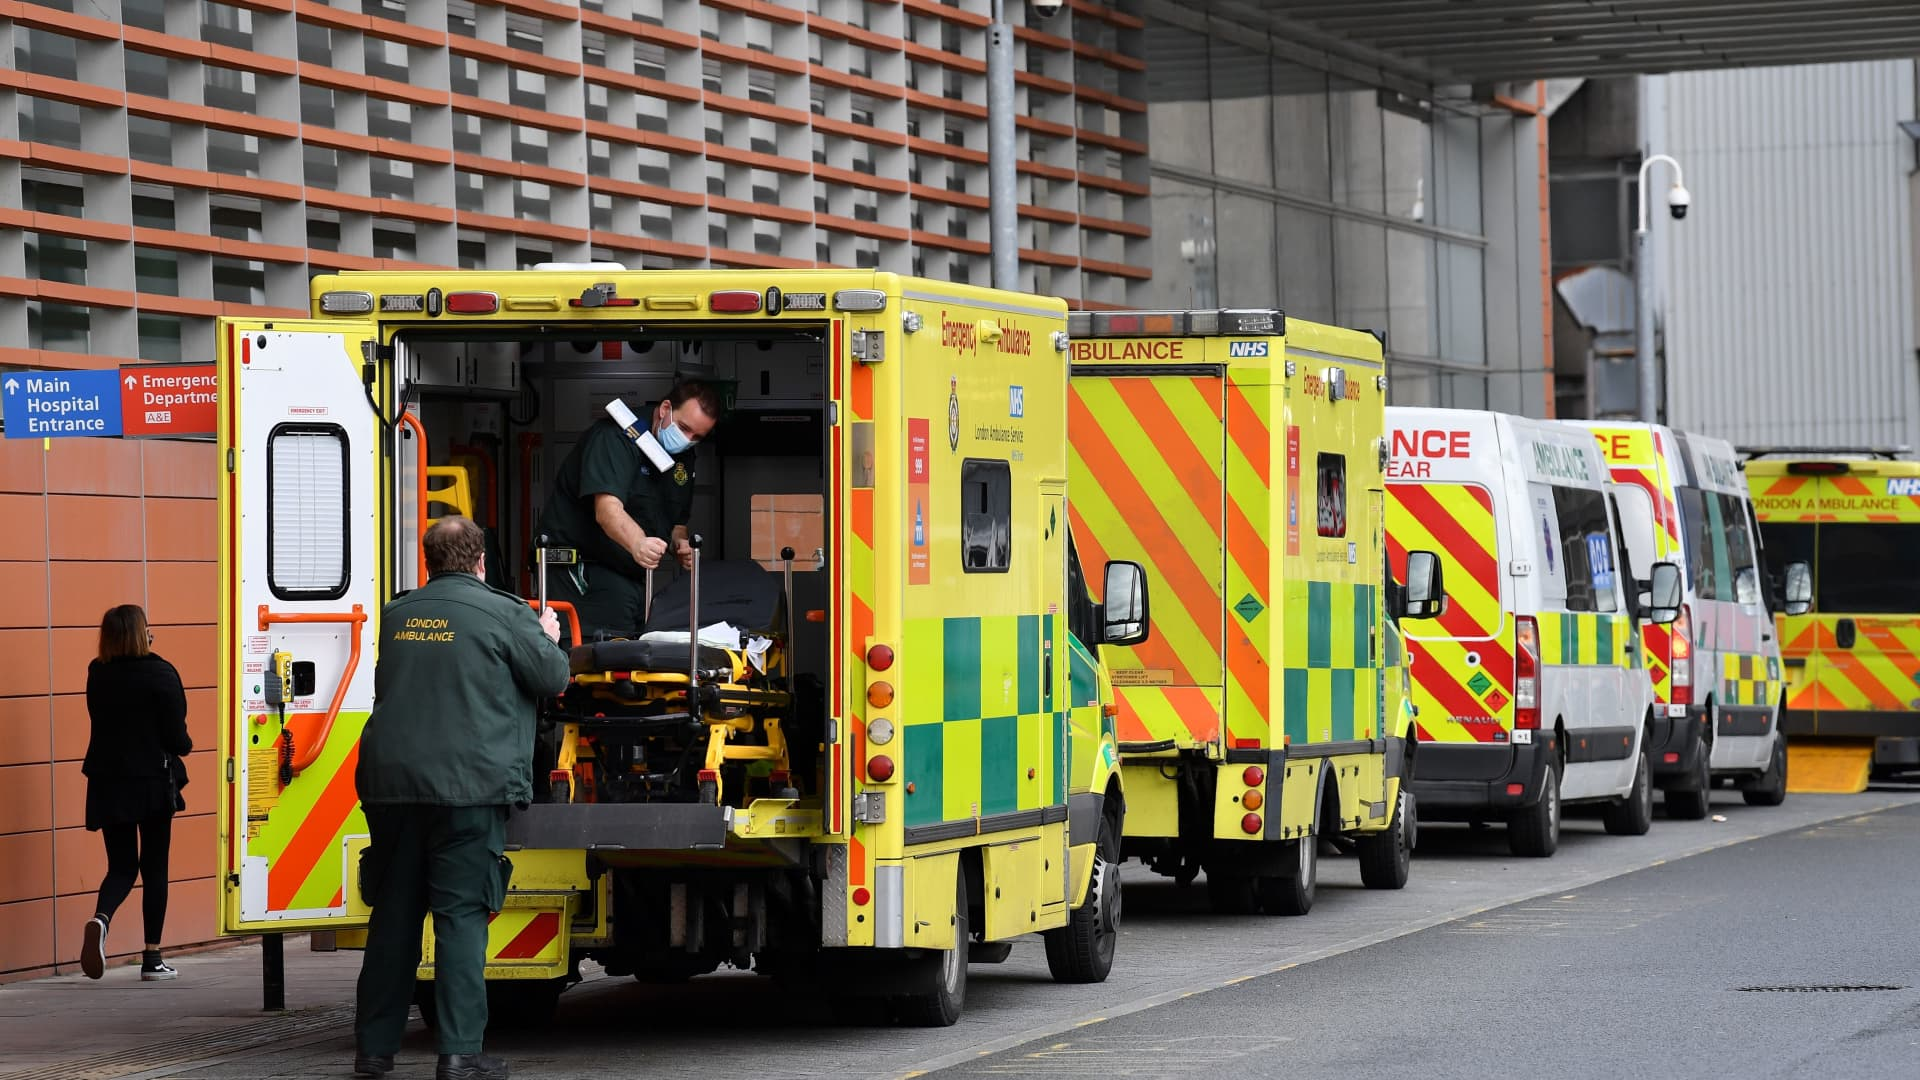 Paramedics move a patient from a ambulance to the Royal London Hospital in east London on January 28, 2021.